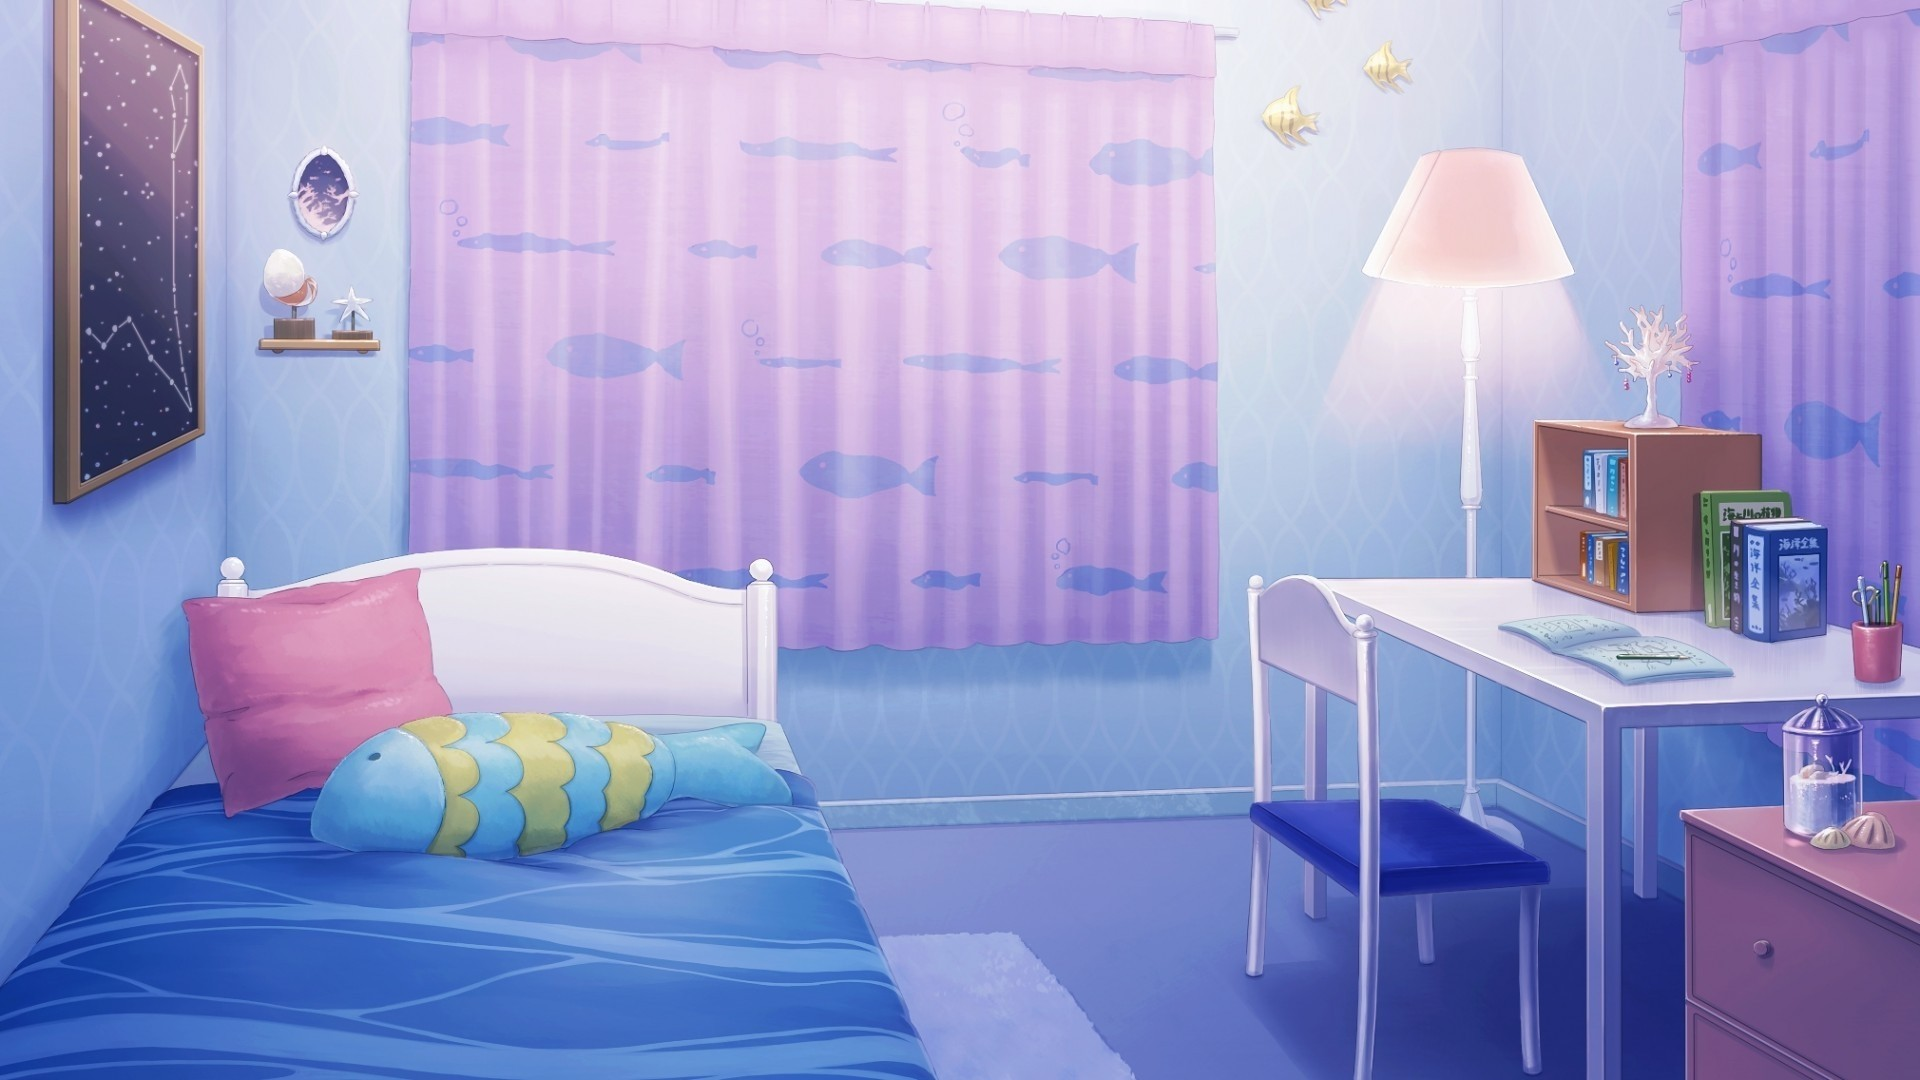 Anime Bedroom Pic